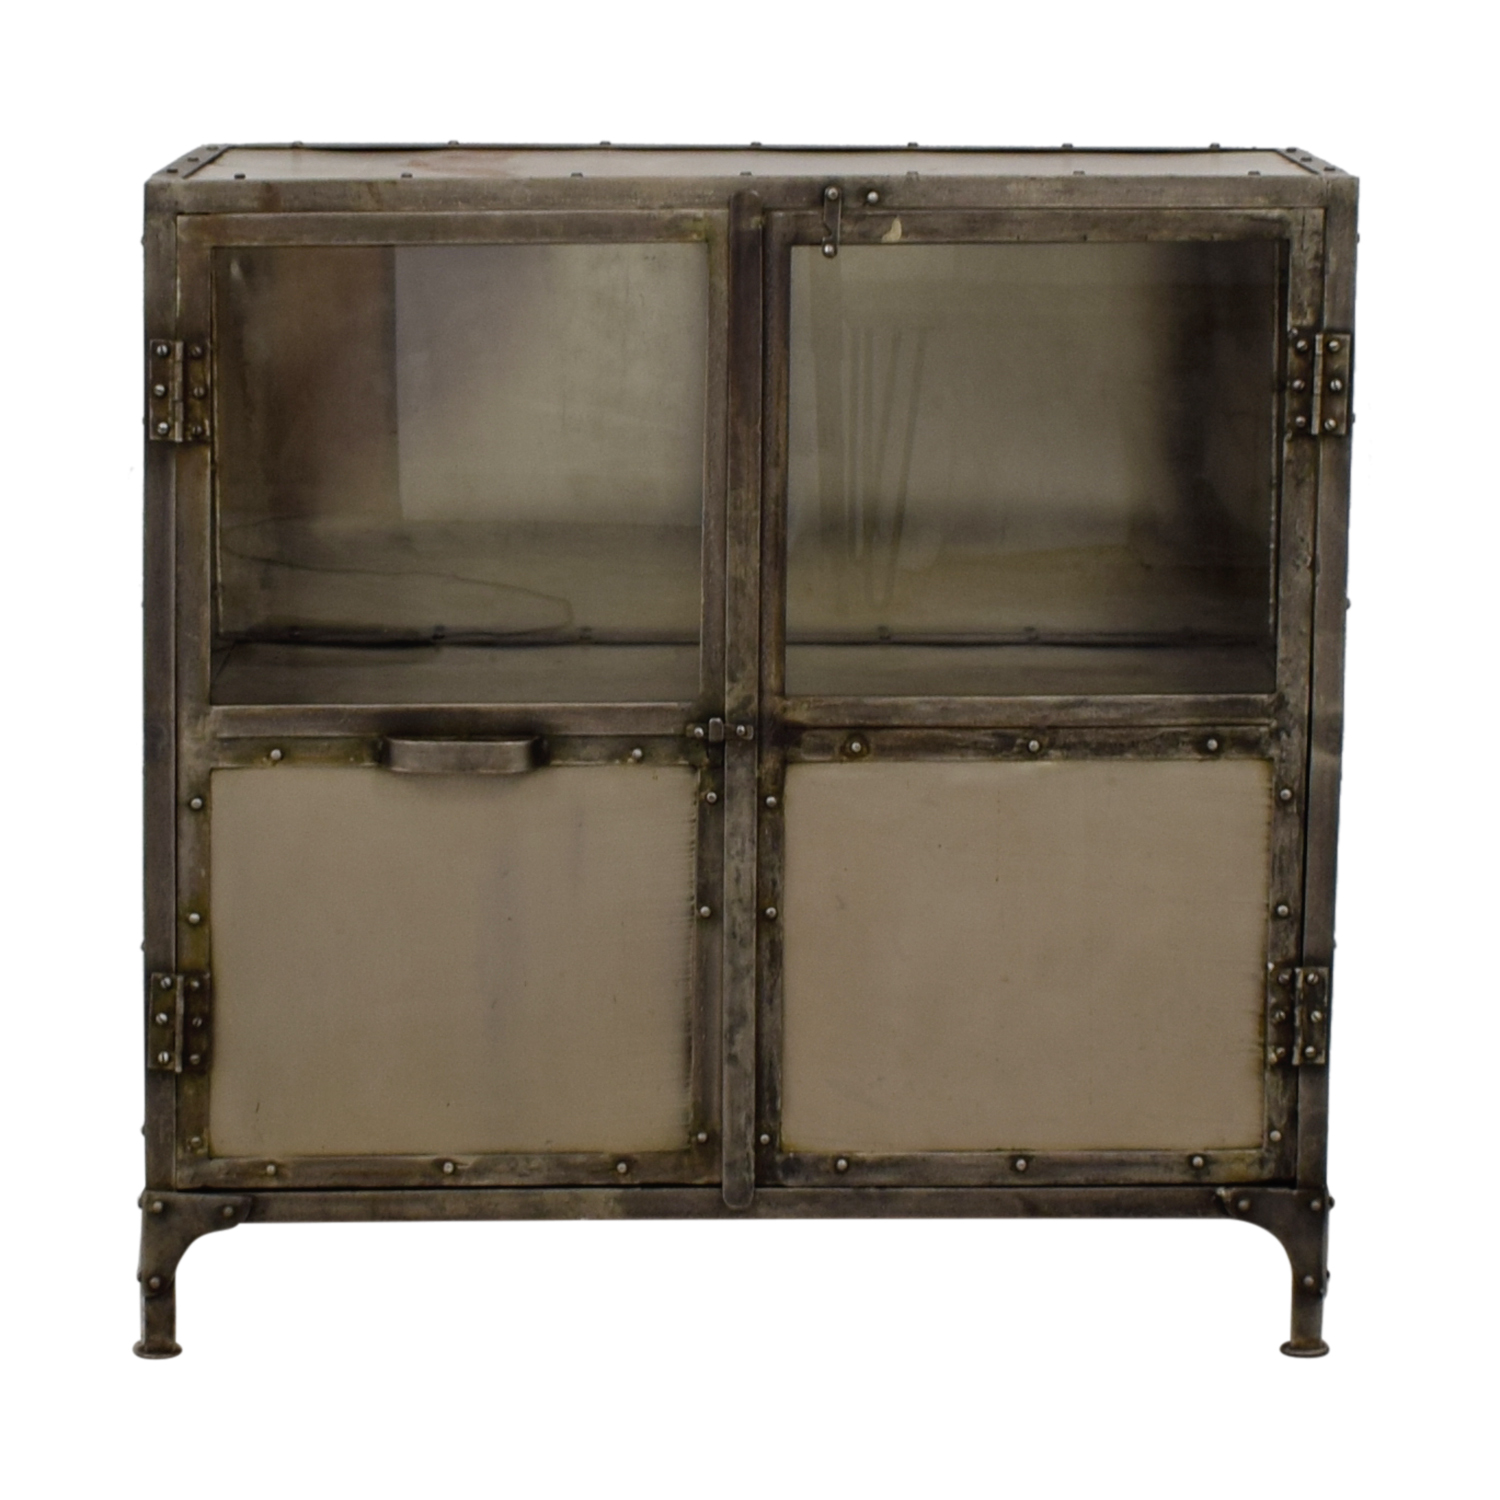 Horchow Horchow Industrial Metal Cabinet price